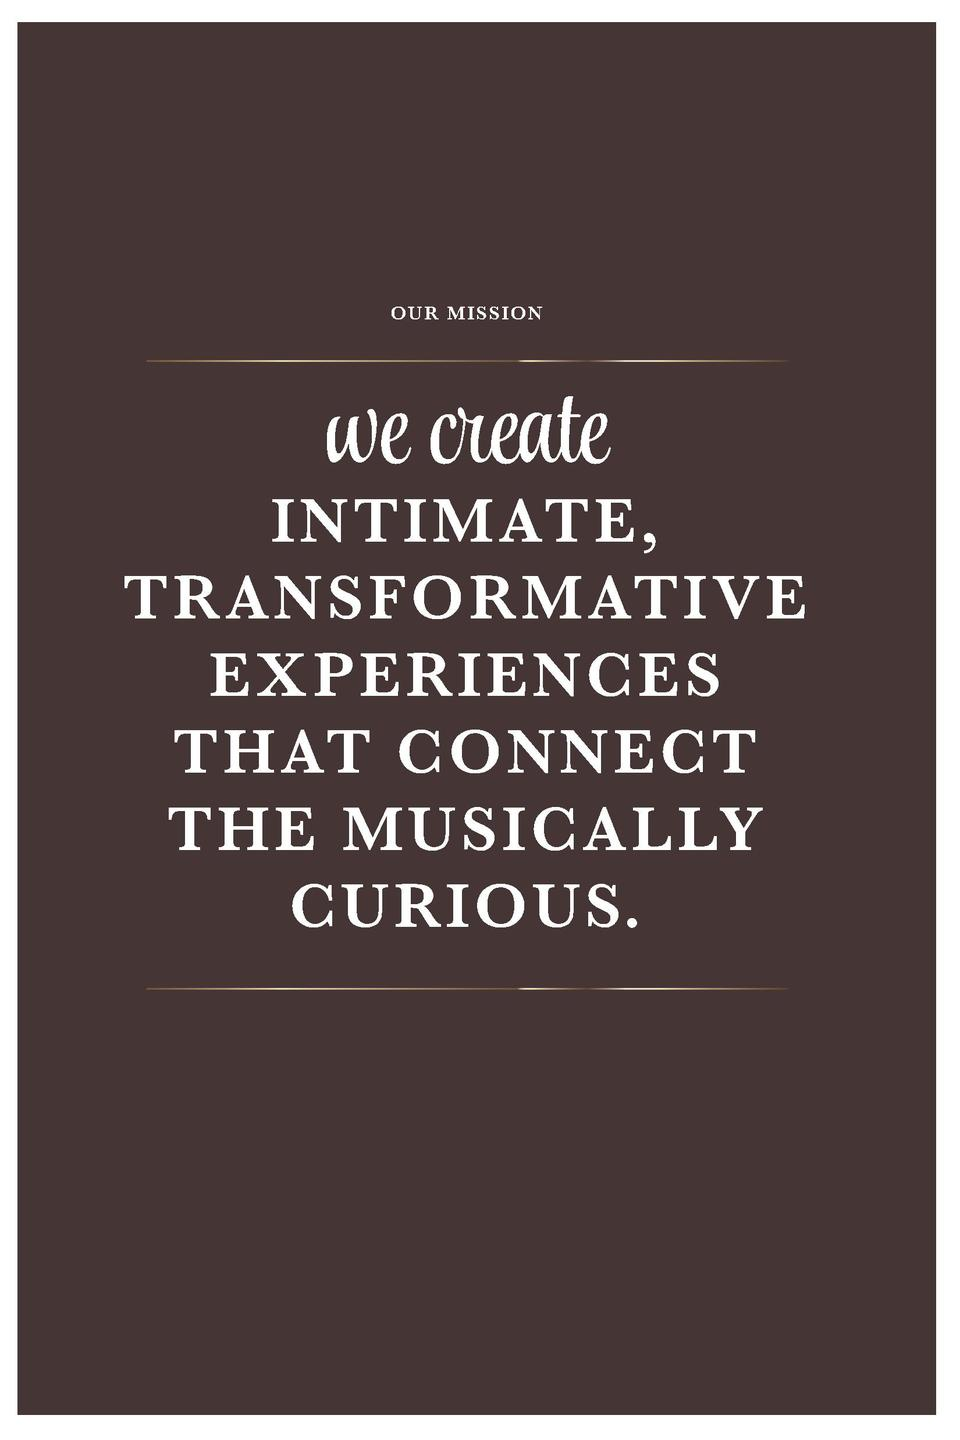 we create OUR MISSION  INTIMATE, TRANSFORMATIVE EXPERIENCES THAT CONNECT THE MUSICALLY CURIOUS.